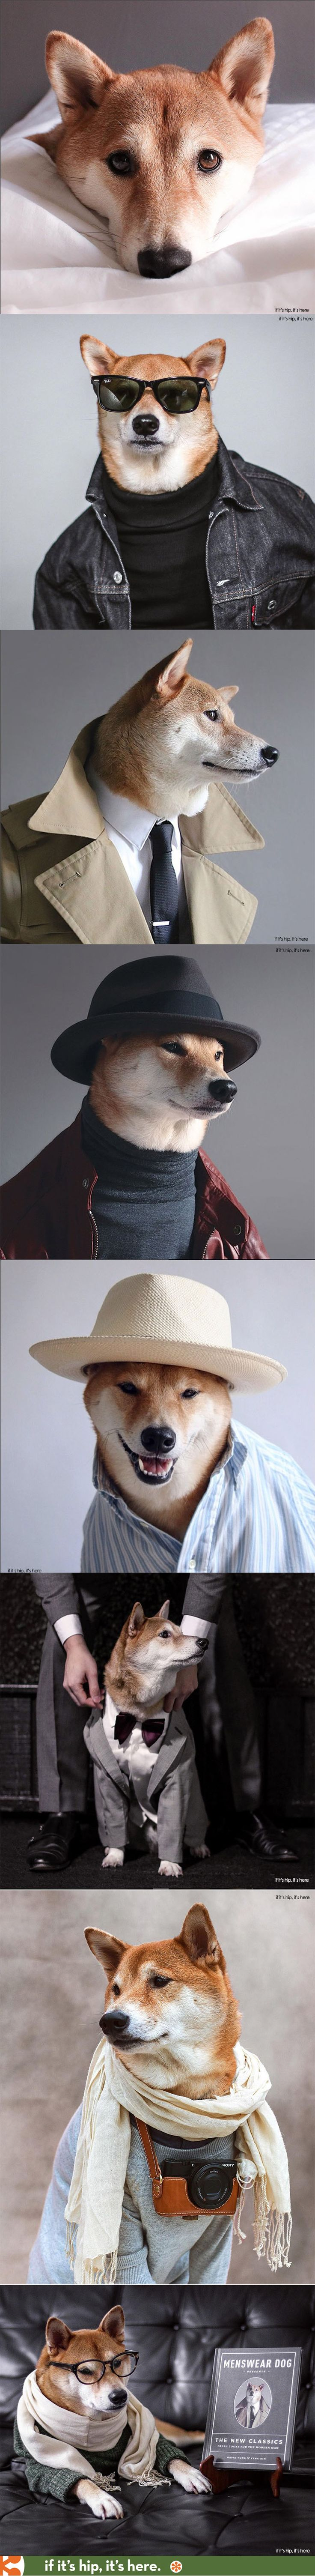 Meet the Shiba Inu who dresses better than you do at http://www.ifitshipitshere.com/bodhi-the-menswear-dog/